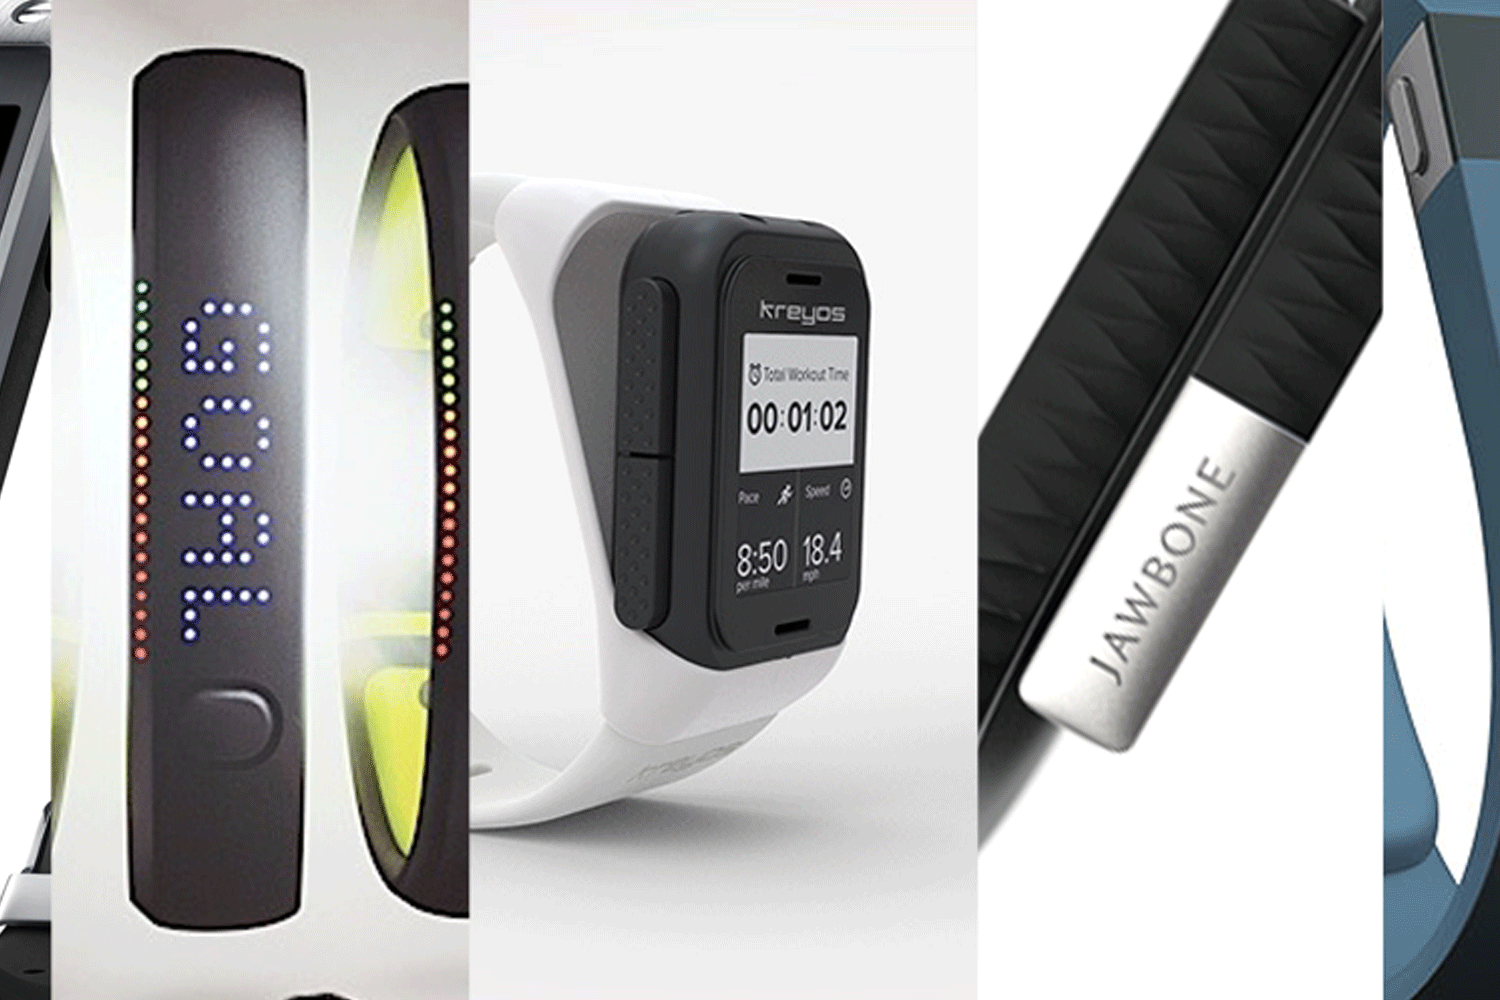 Design Principles for Wearable Tech – What's up with Wearables?